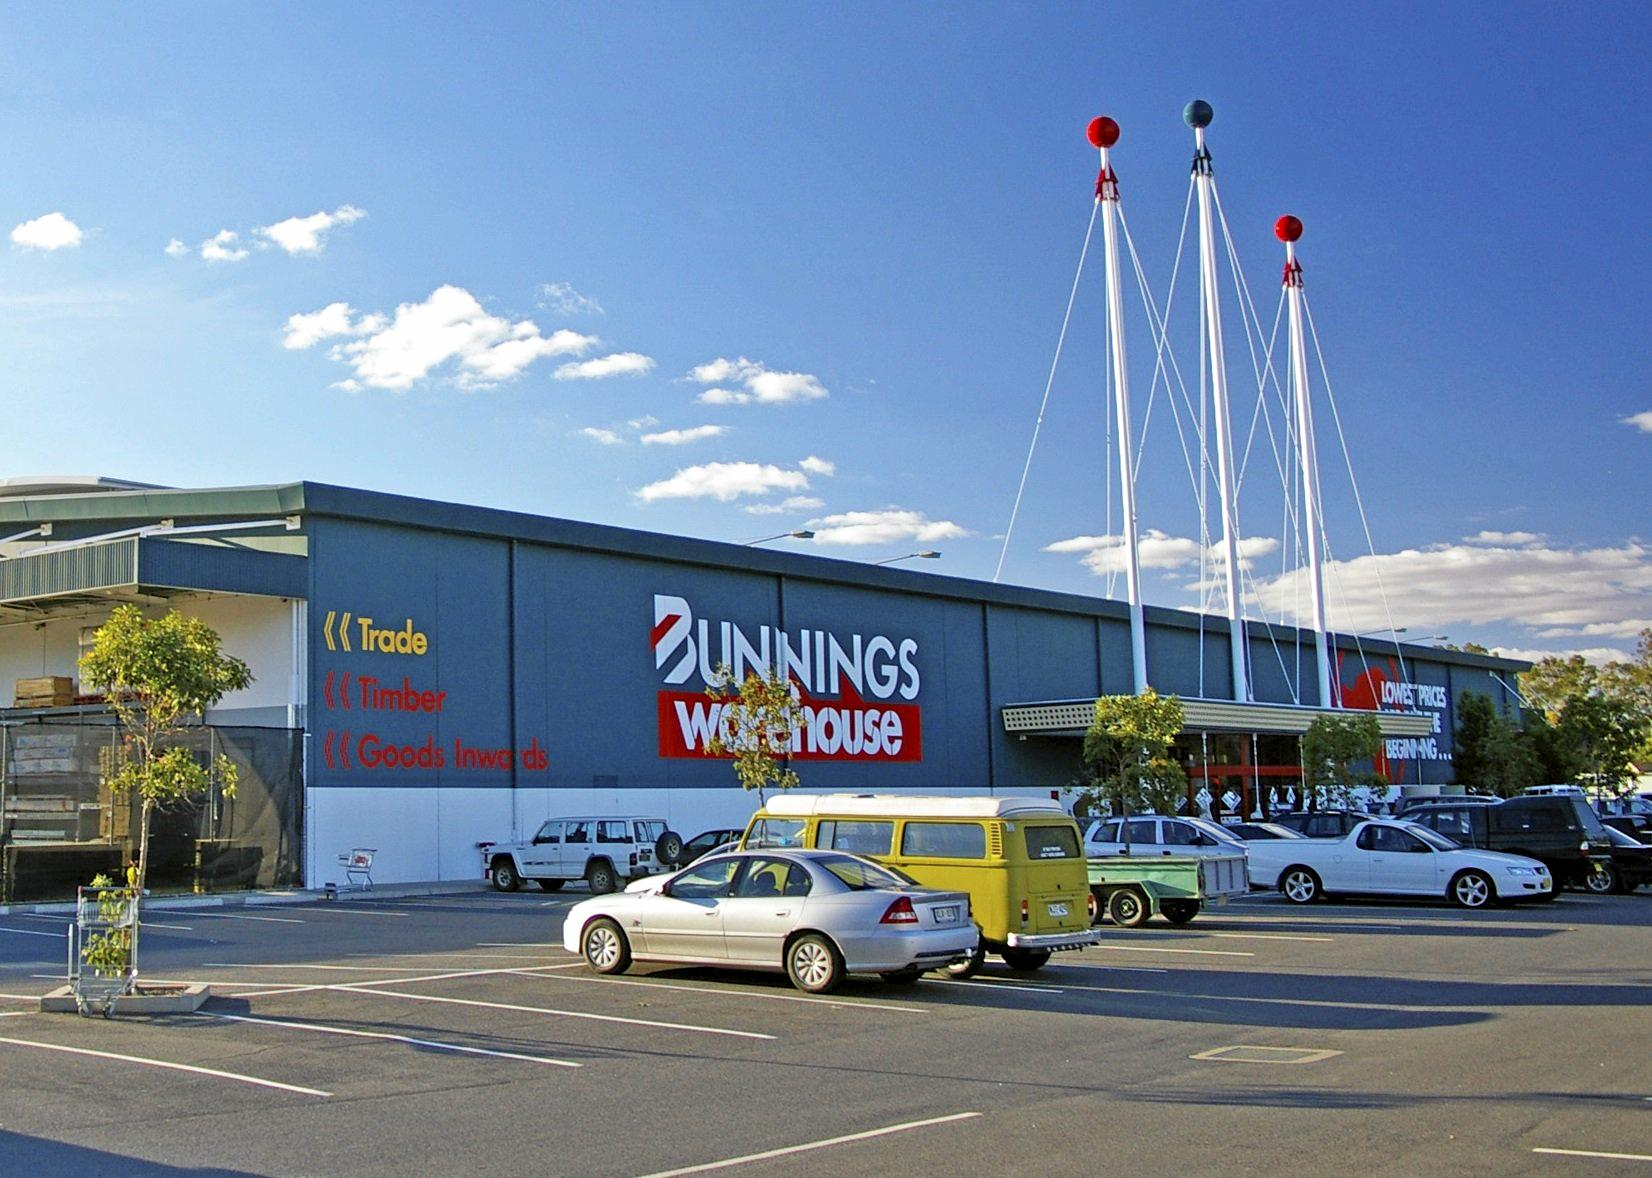 Bunnings has been unable to nail down a new project at Coolum. (File photo)